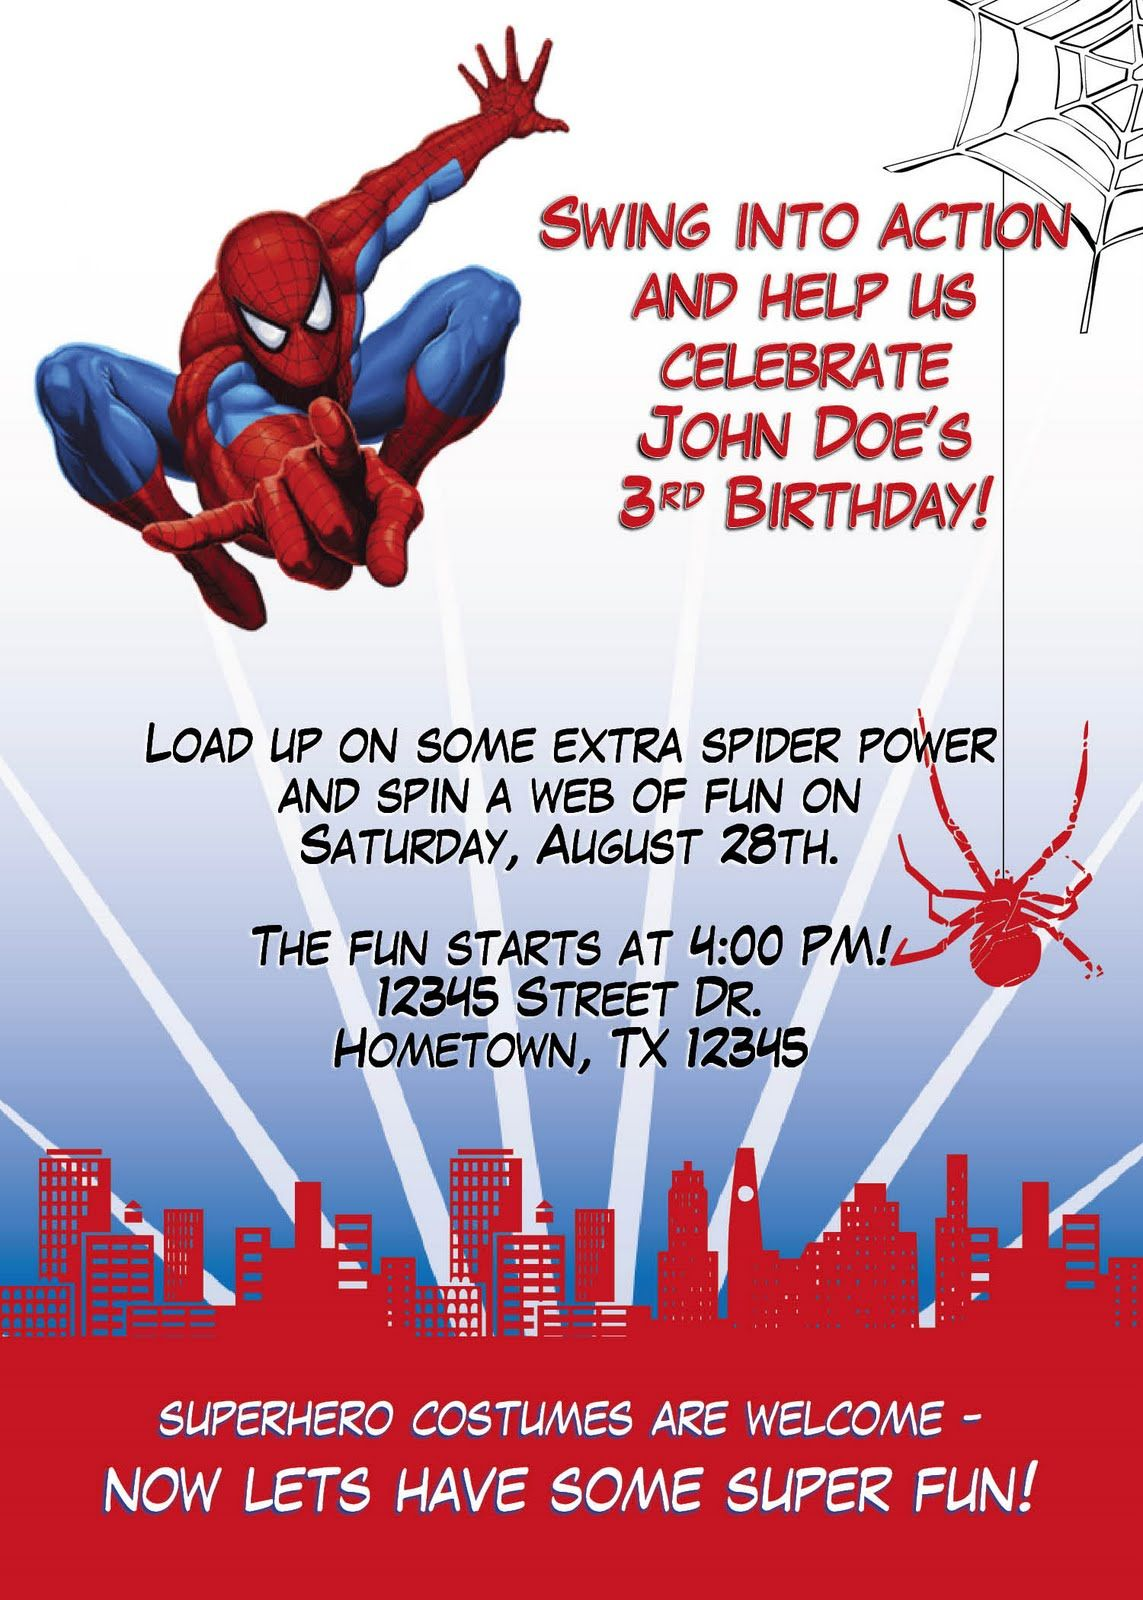 Spiderman birthday party leslie designs stuff spiderman birthday spiderman birthday party leslie designs stuff spiderman birthday party invitation stopboris Choice Image